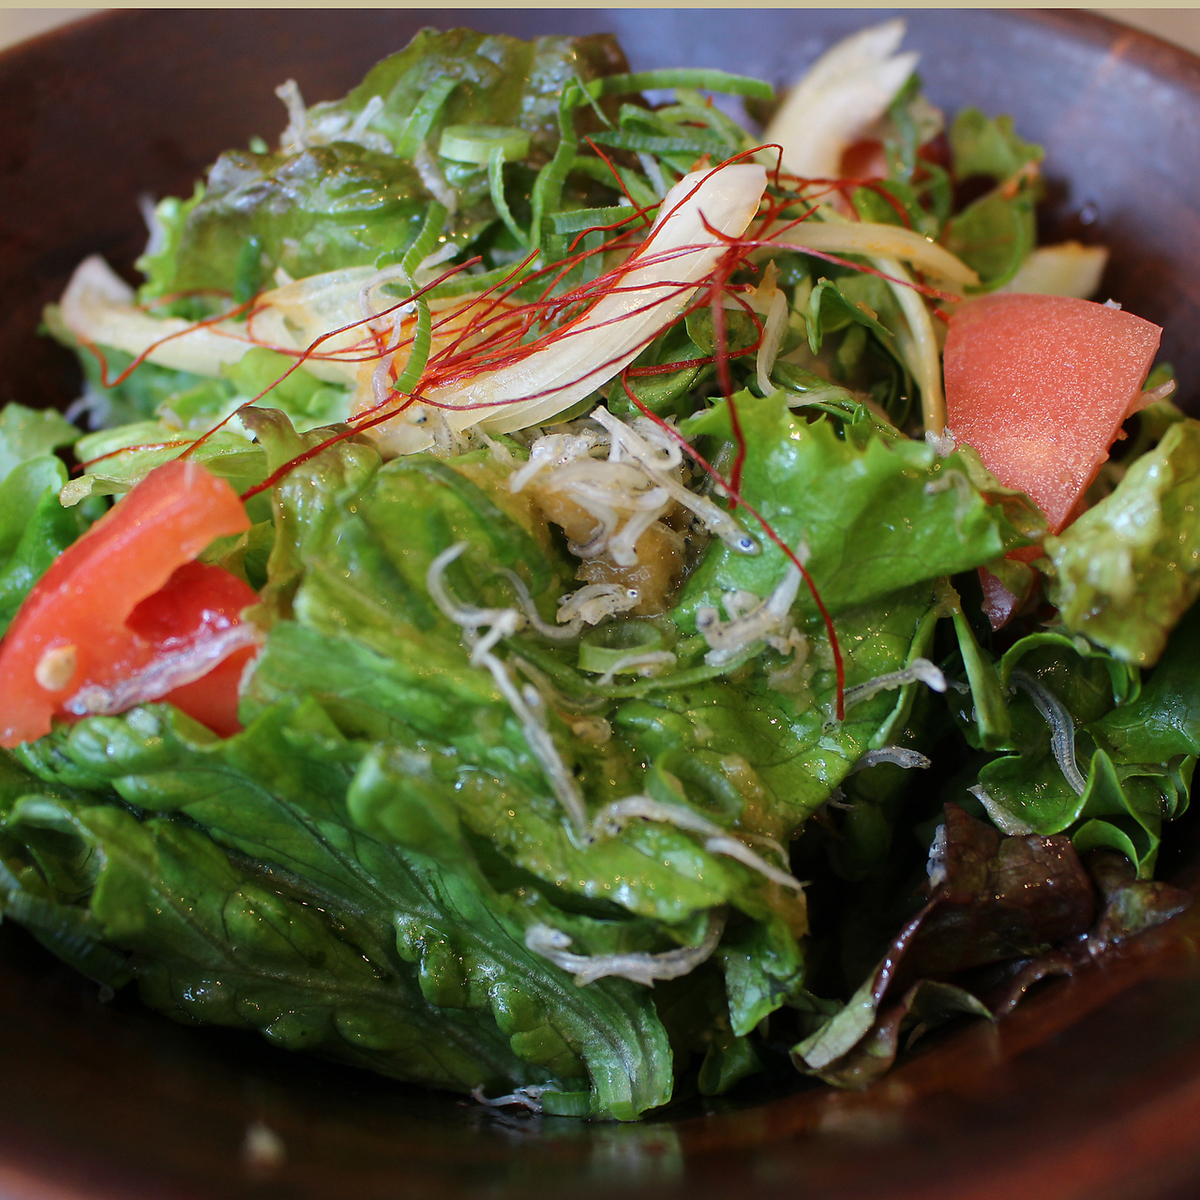 Japanese style salad with tomato cream and chestnut